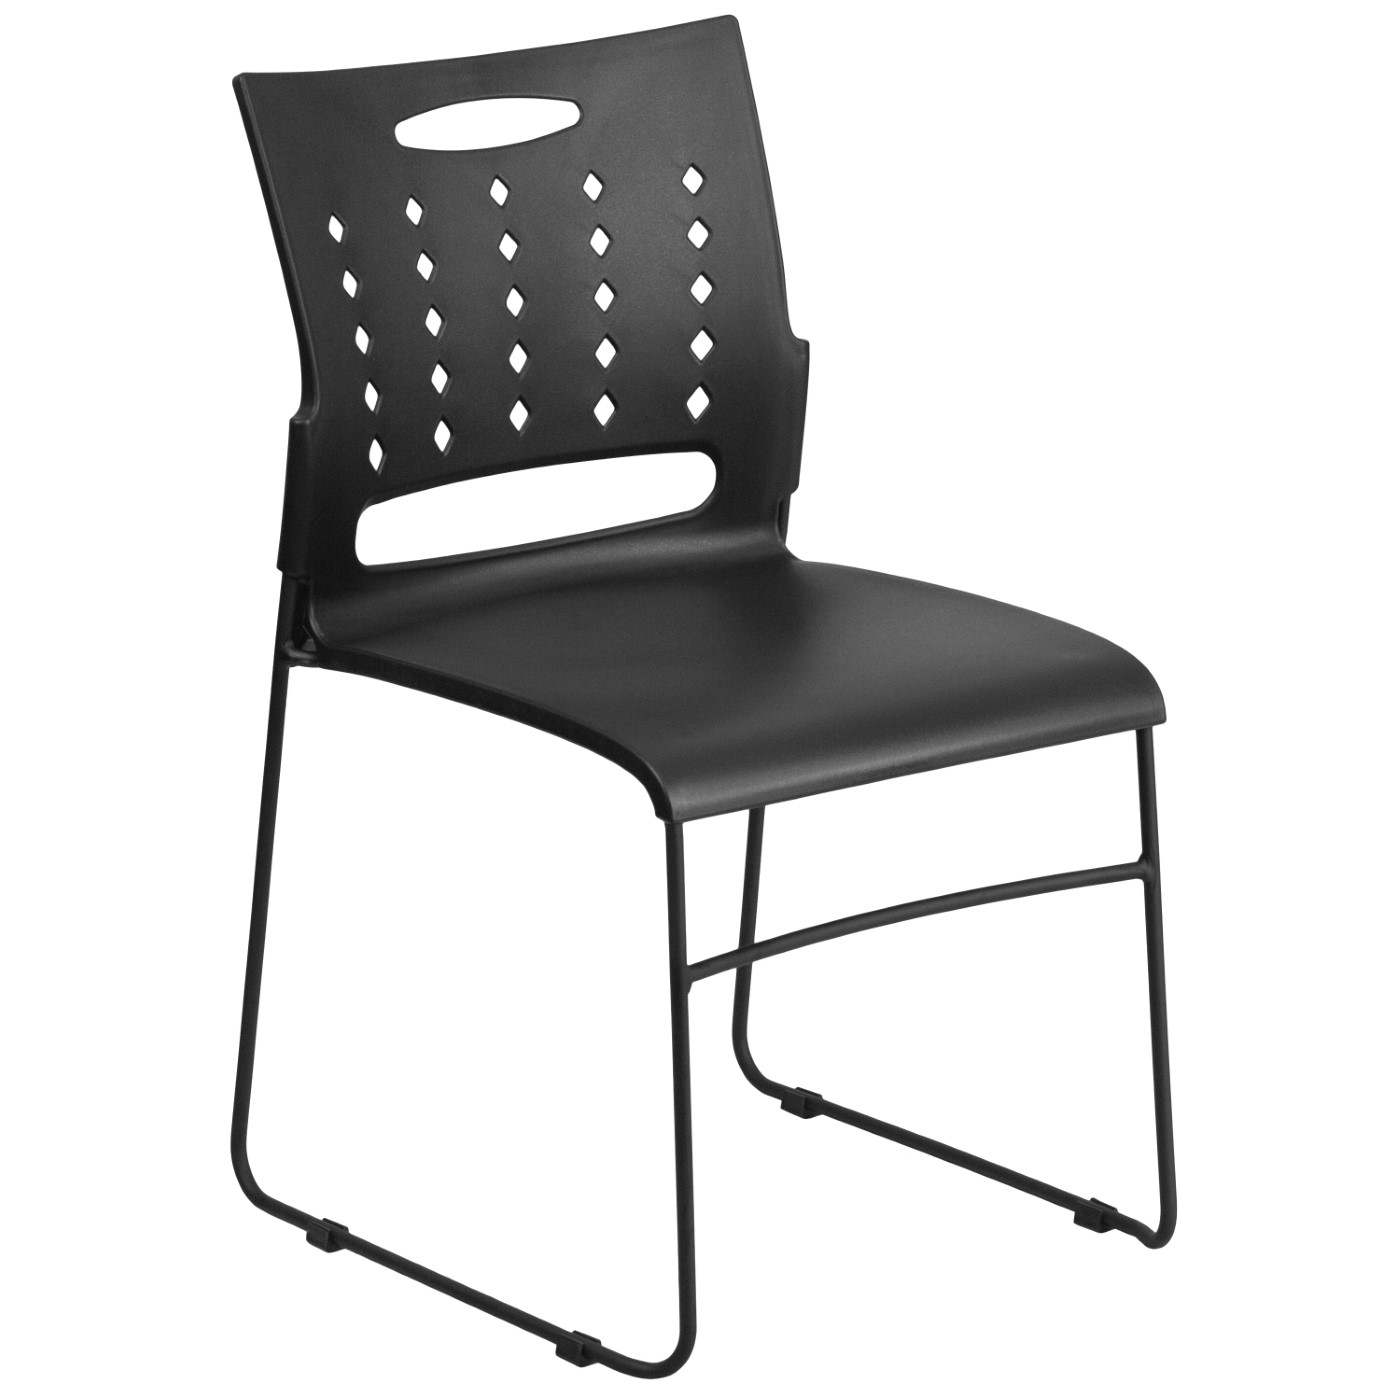 TOUGH ENOUGH Series 881 lb. Capacity Black Sled Base Stack Chair with Air-Vent Back